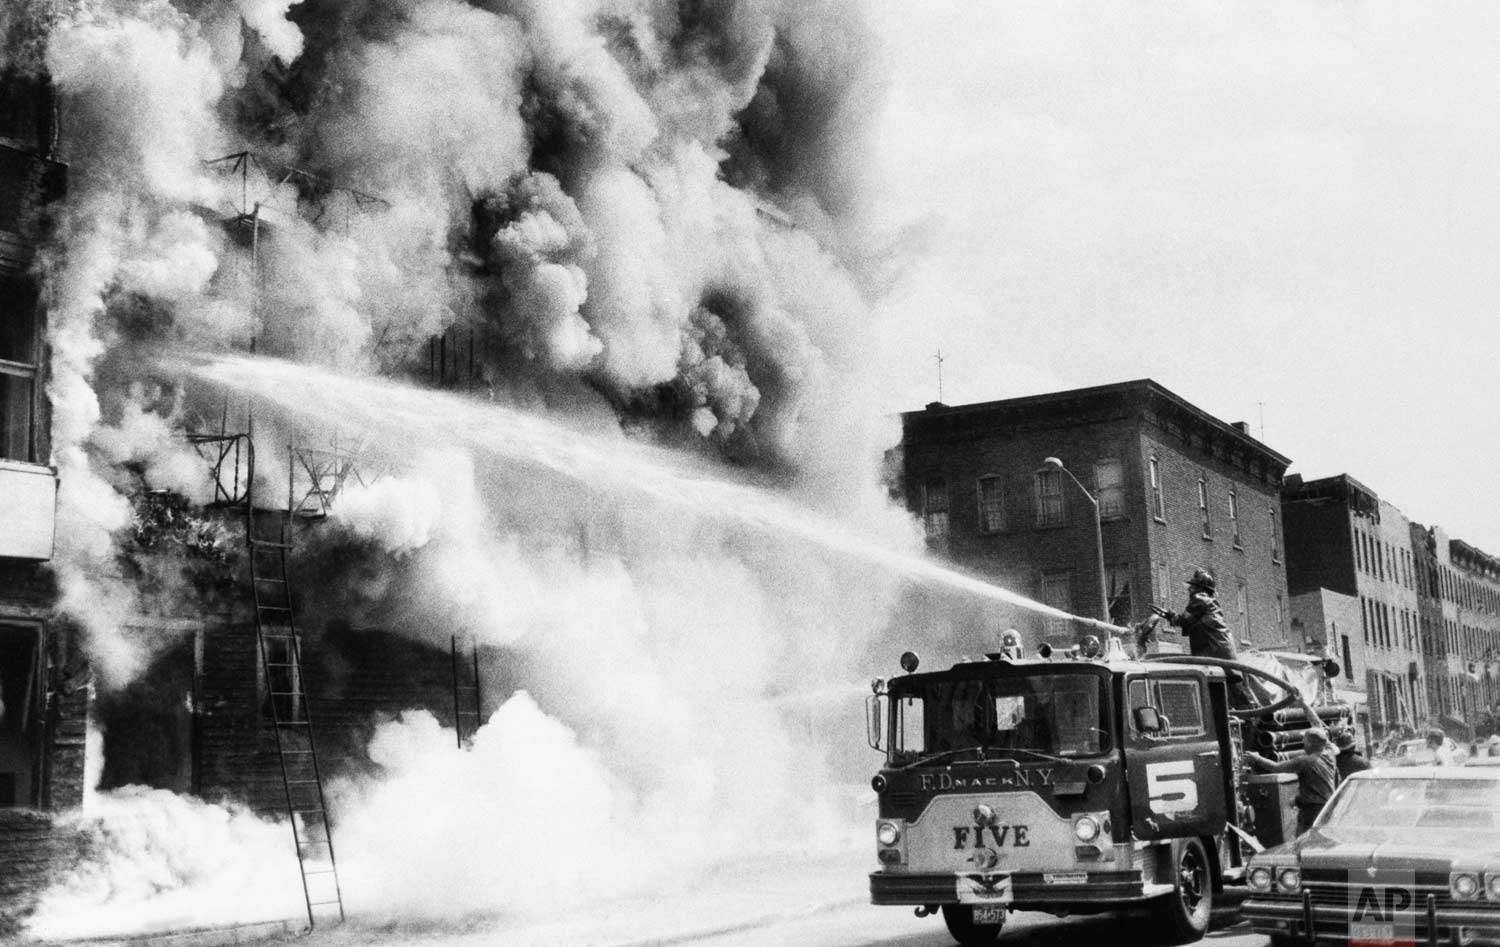 Firemen fight a blaze above a row of looted stores in New York's Brooklyn borough, July 14, 1977, the day after the power failure. The stores were looted during blackout. (AP Photo)